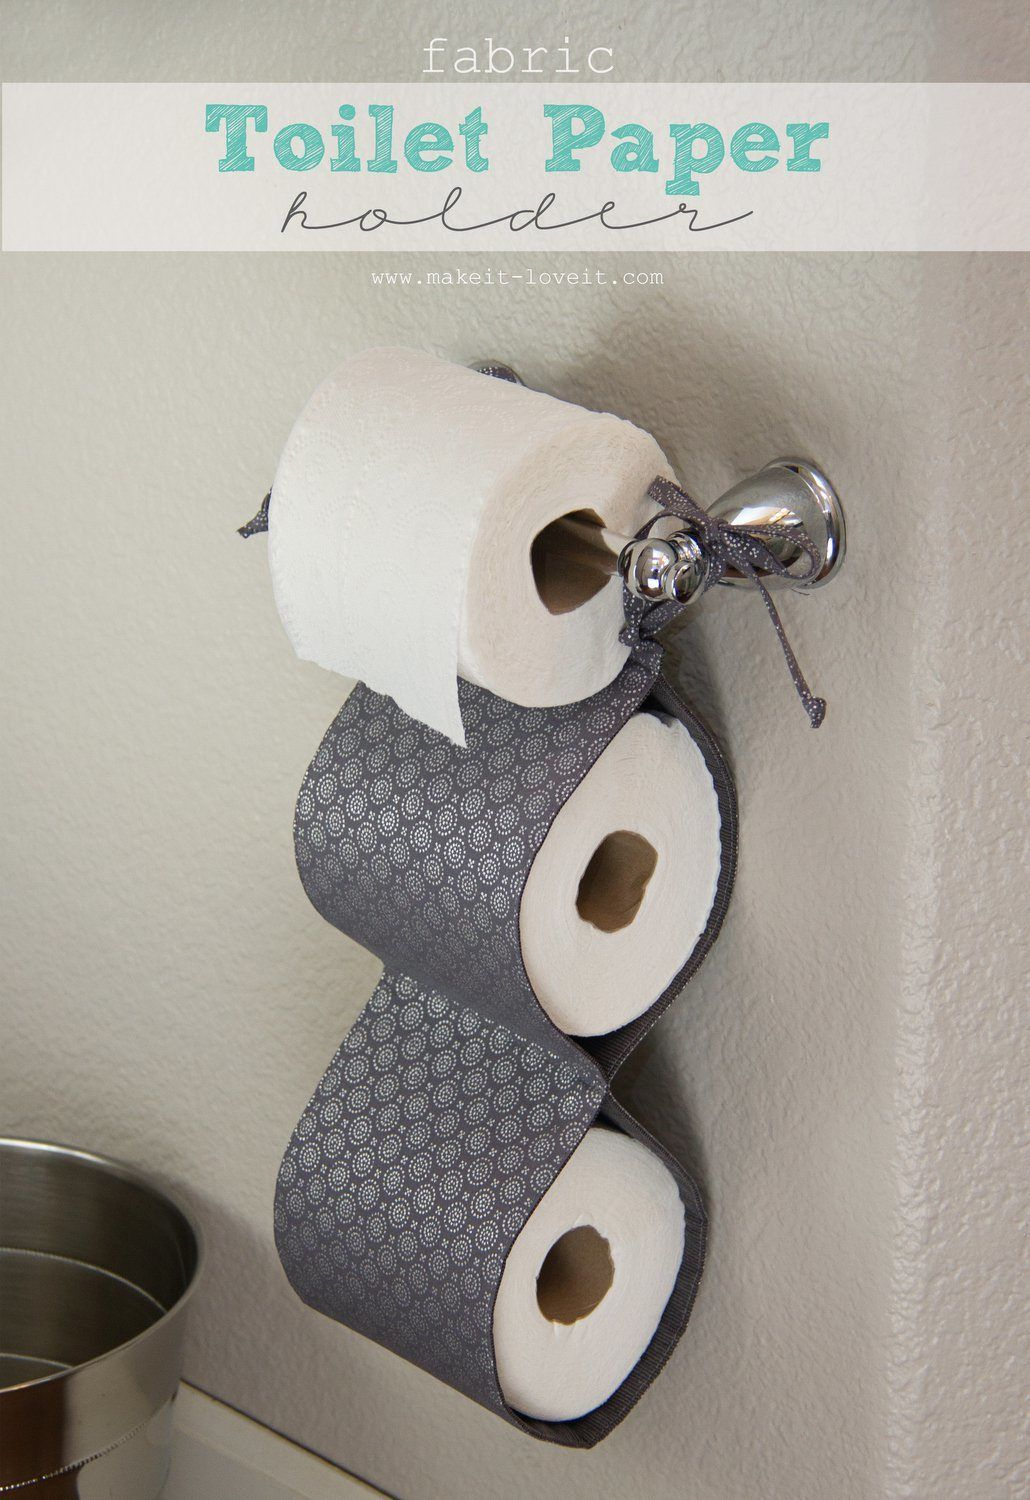 15 Totally Unusual DIY Toilet Paper Holders